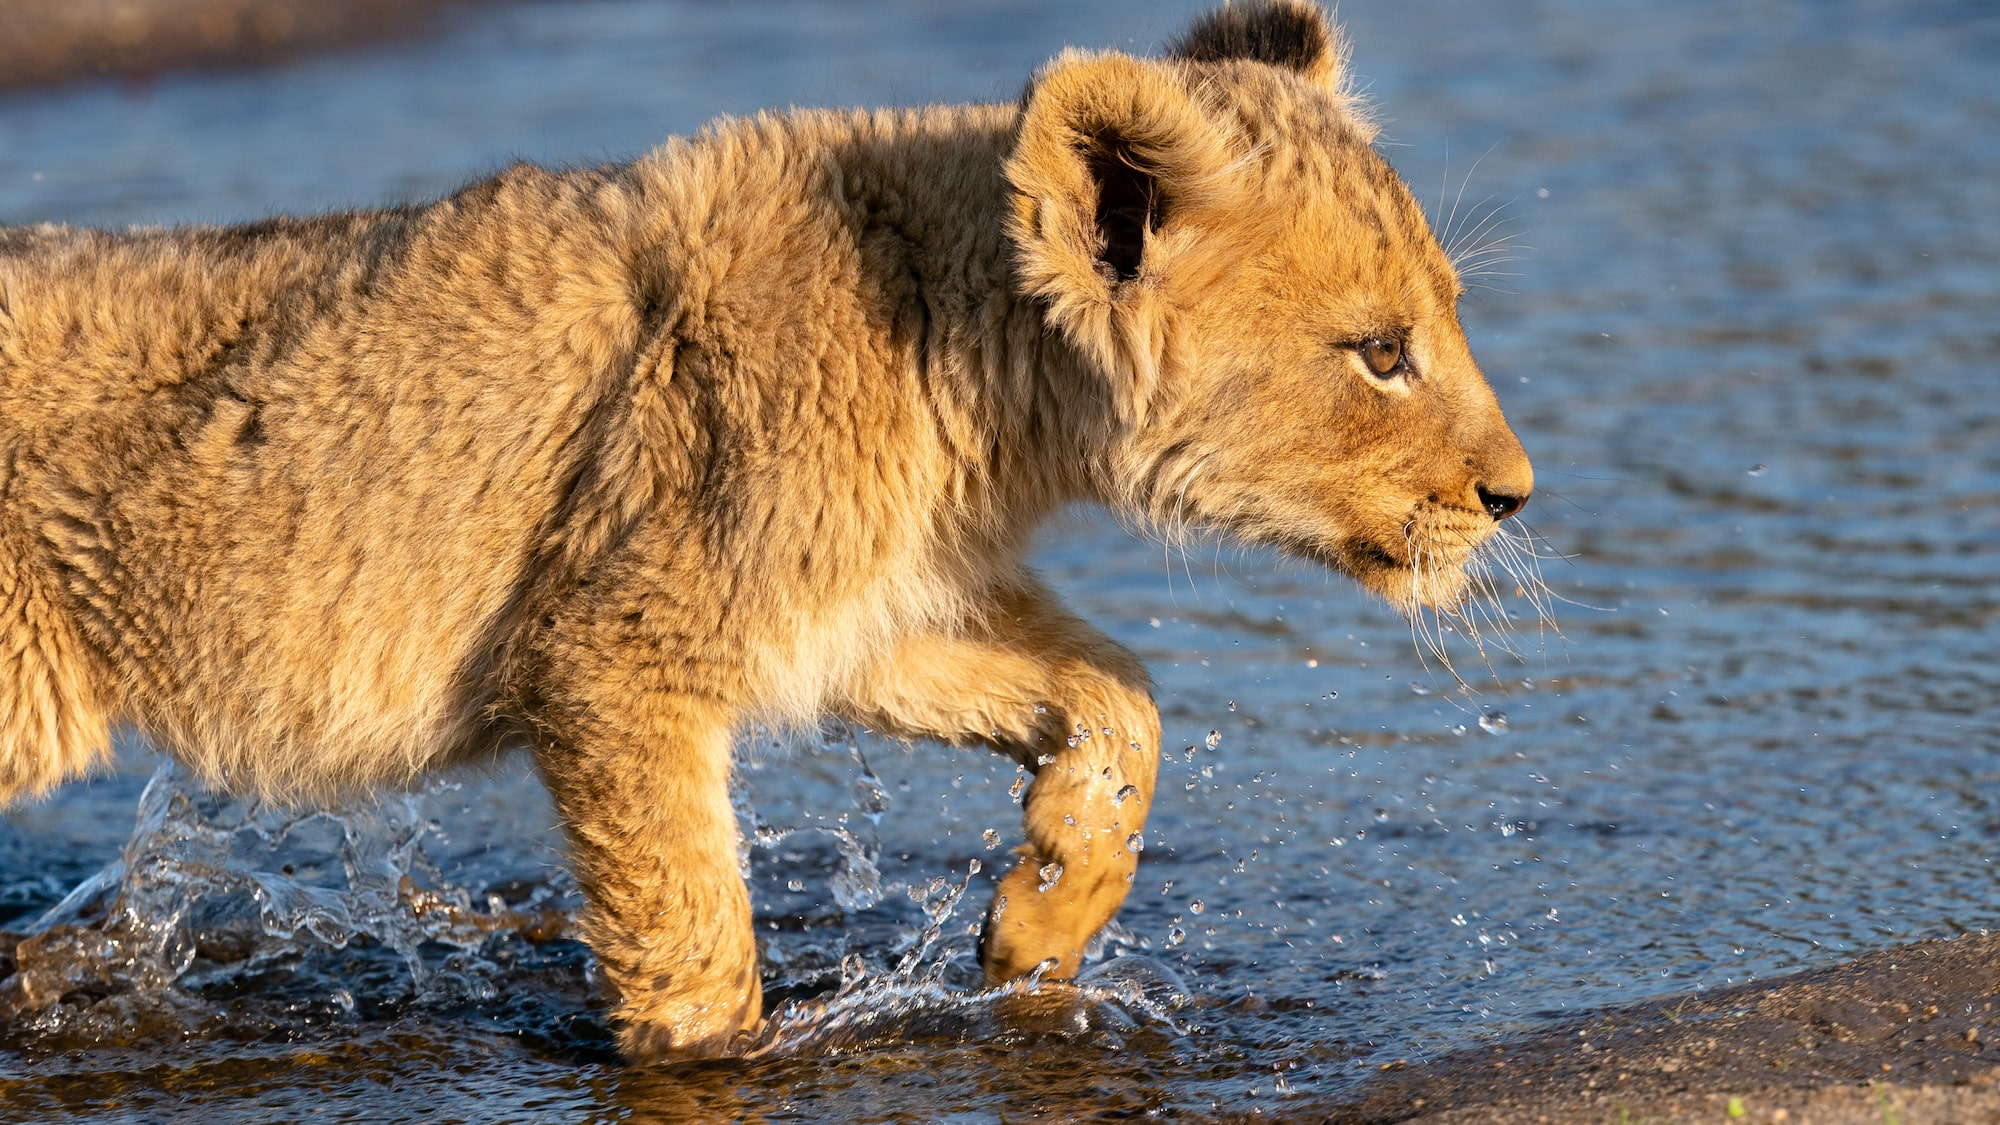 Lion cub in shallow water